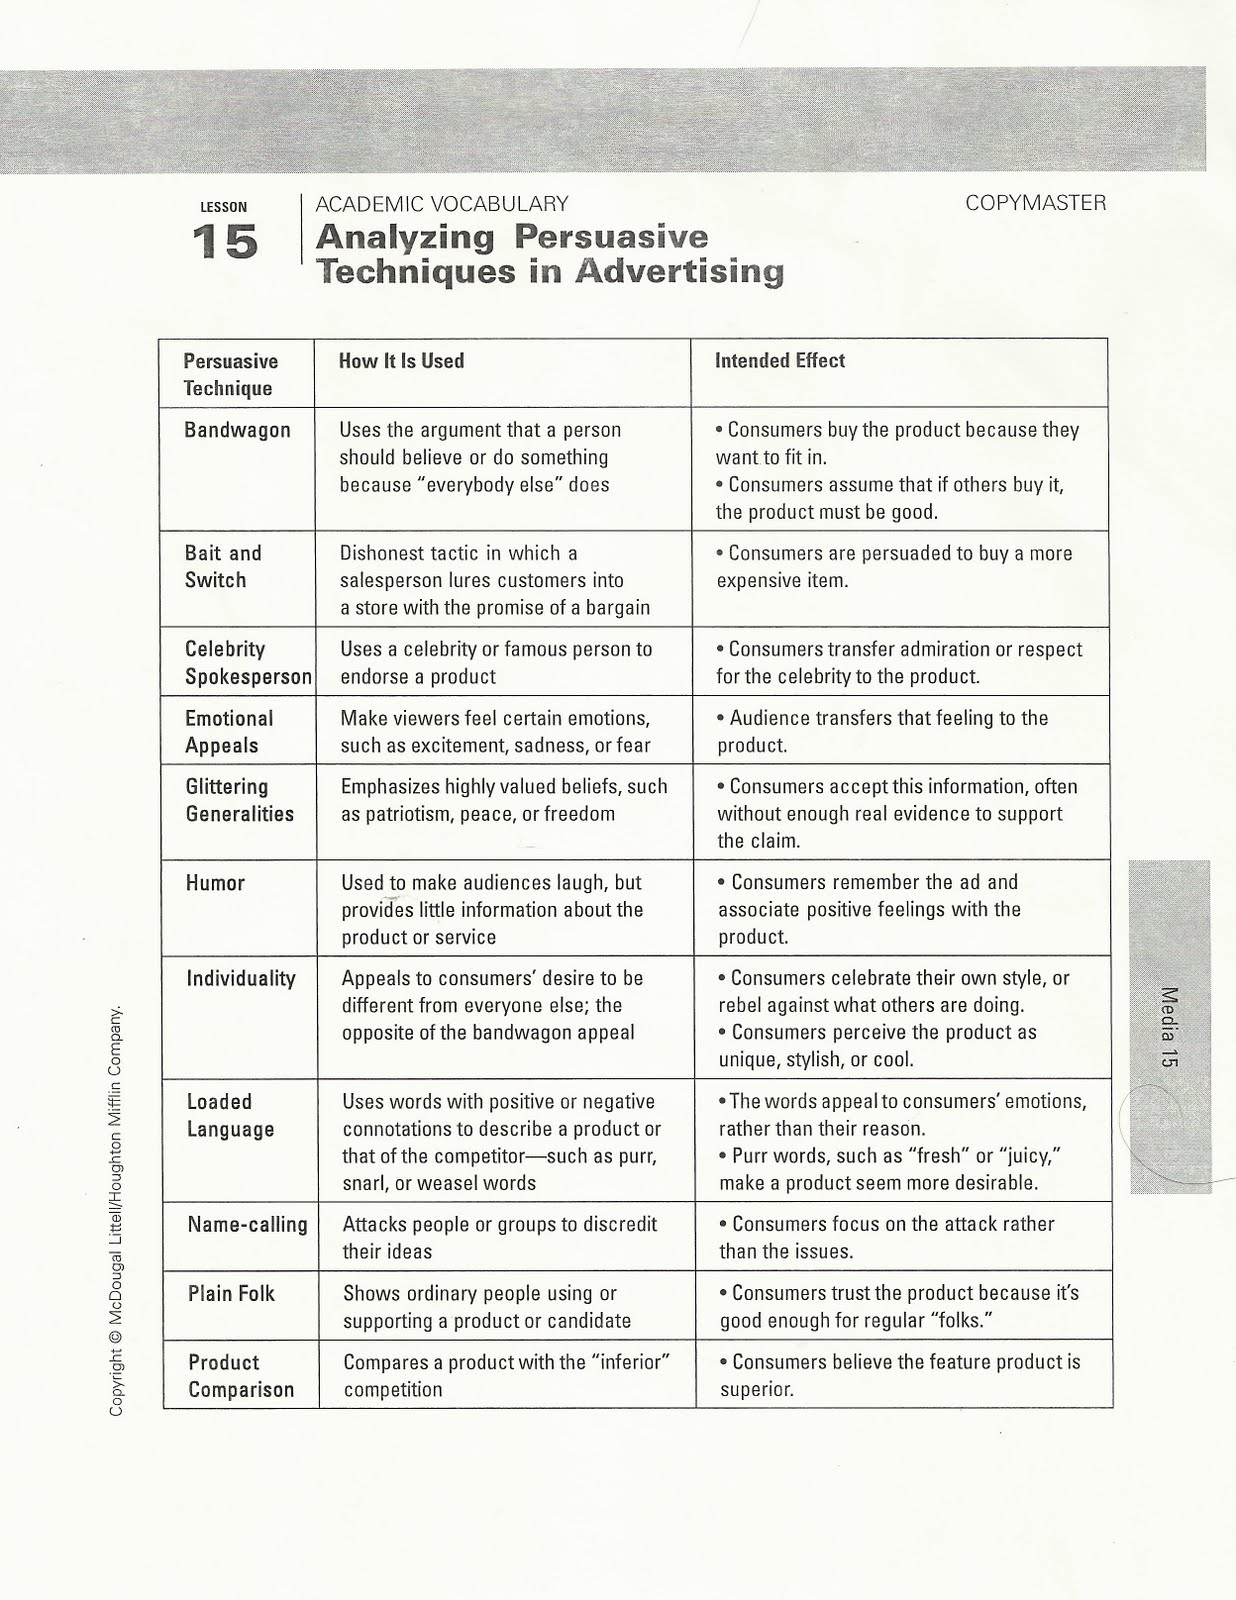 Worksheets Persuasive Techniques Worksheets persuasive techniques worksheet worksheets kristawiltbank free of sharebrowse collection sharebrowse